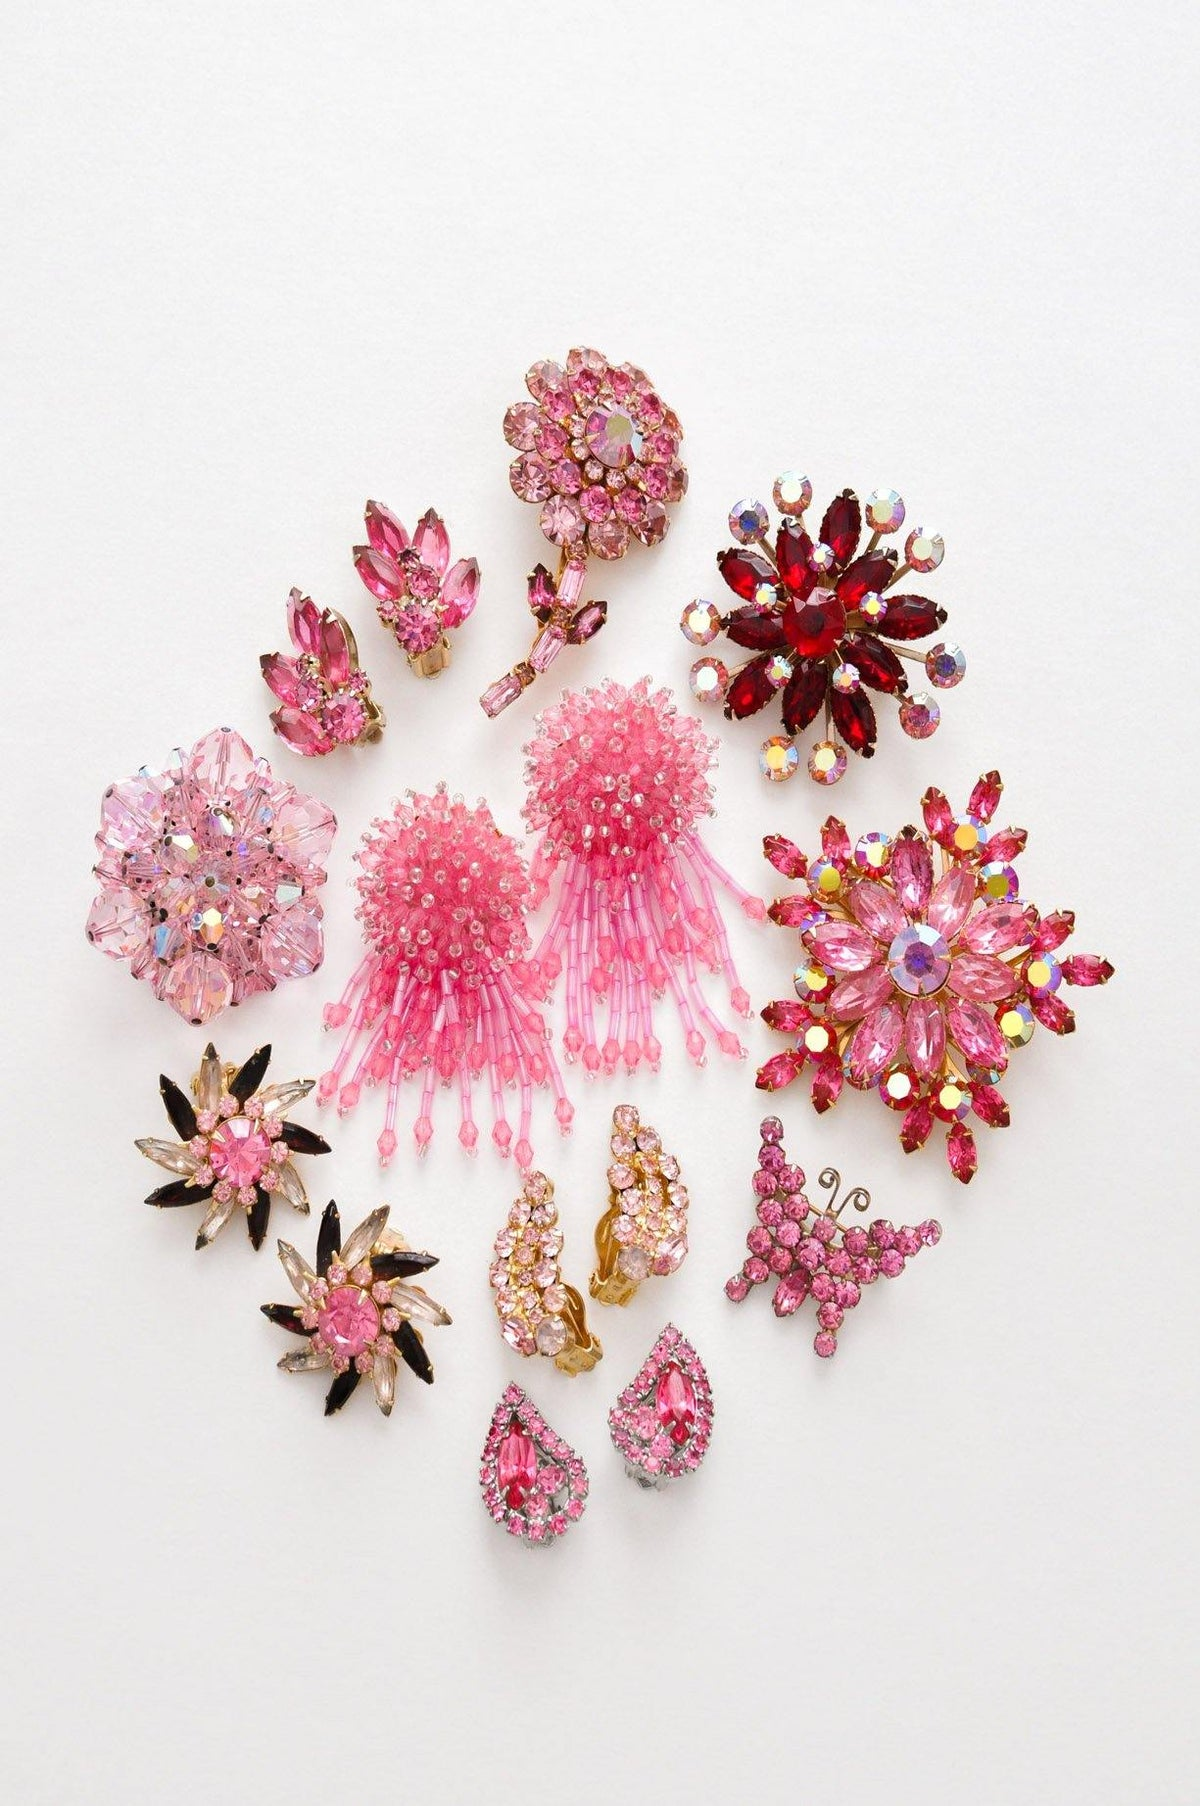 Vintage pink rhinestone jewelry from Sweet & Spark.